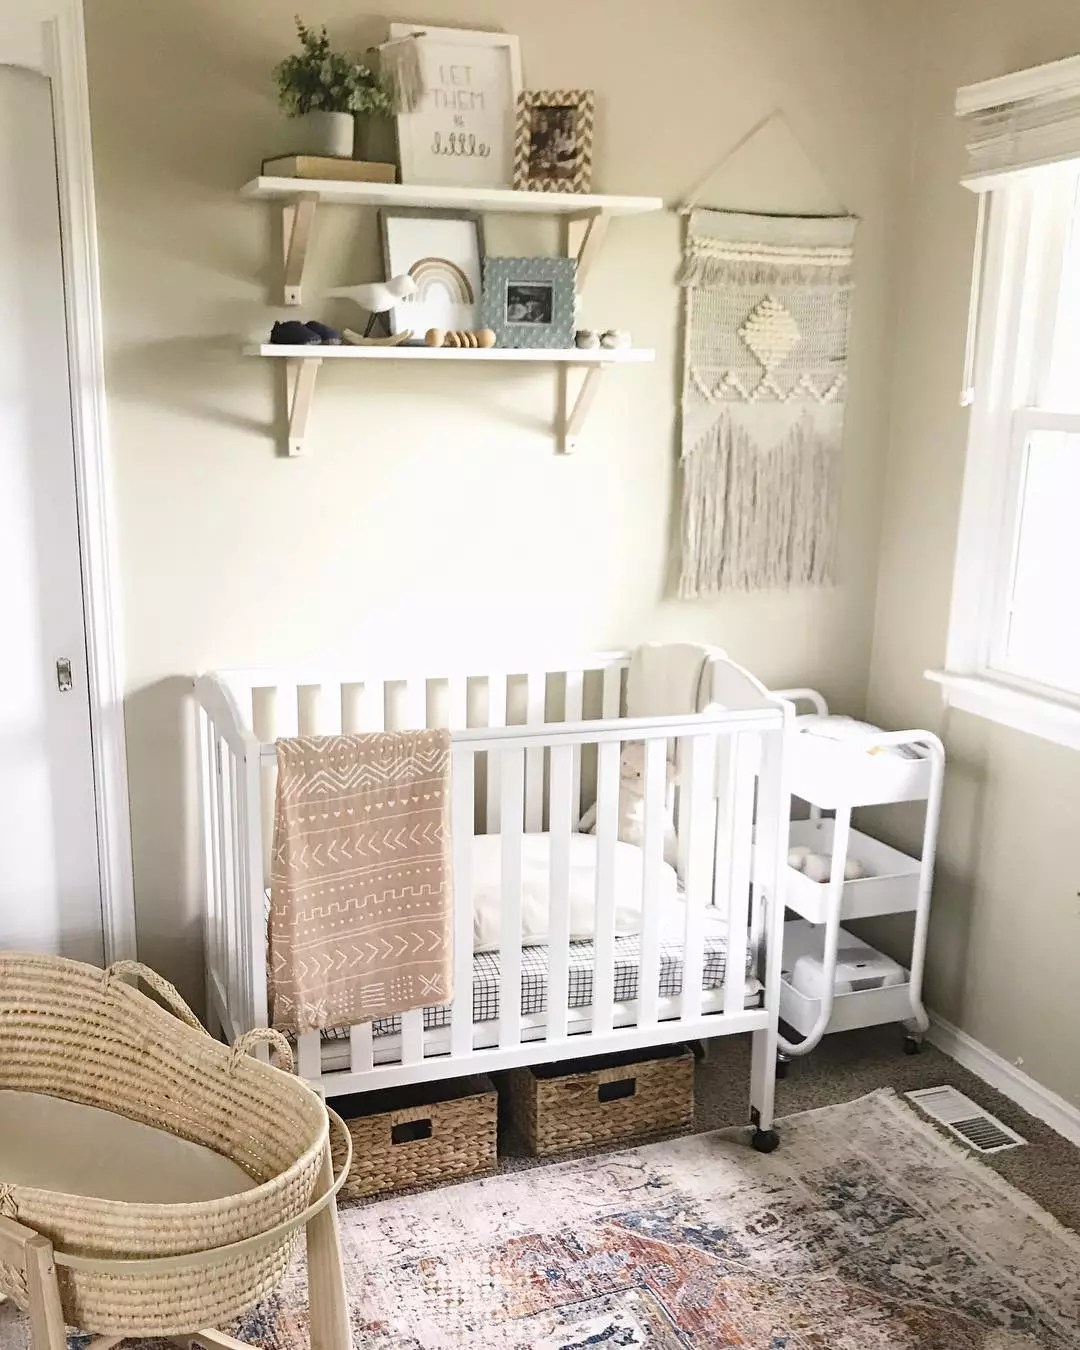 Small Crib in Childrens Room. Photo by Instagram user @amandalippeblog